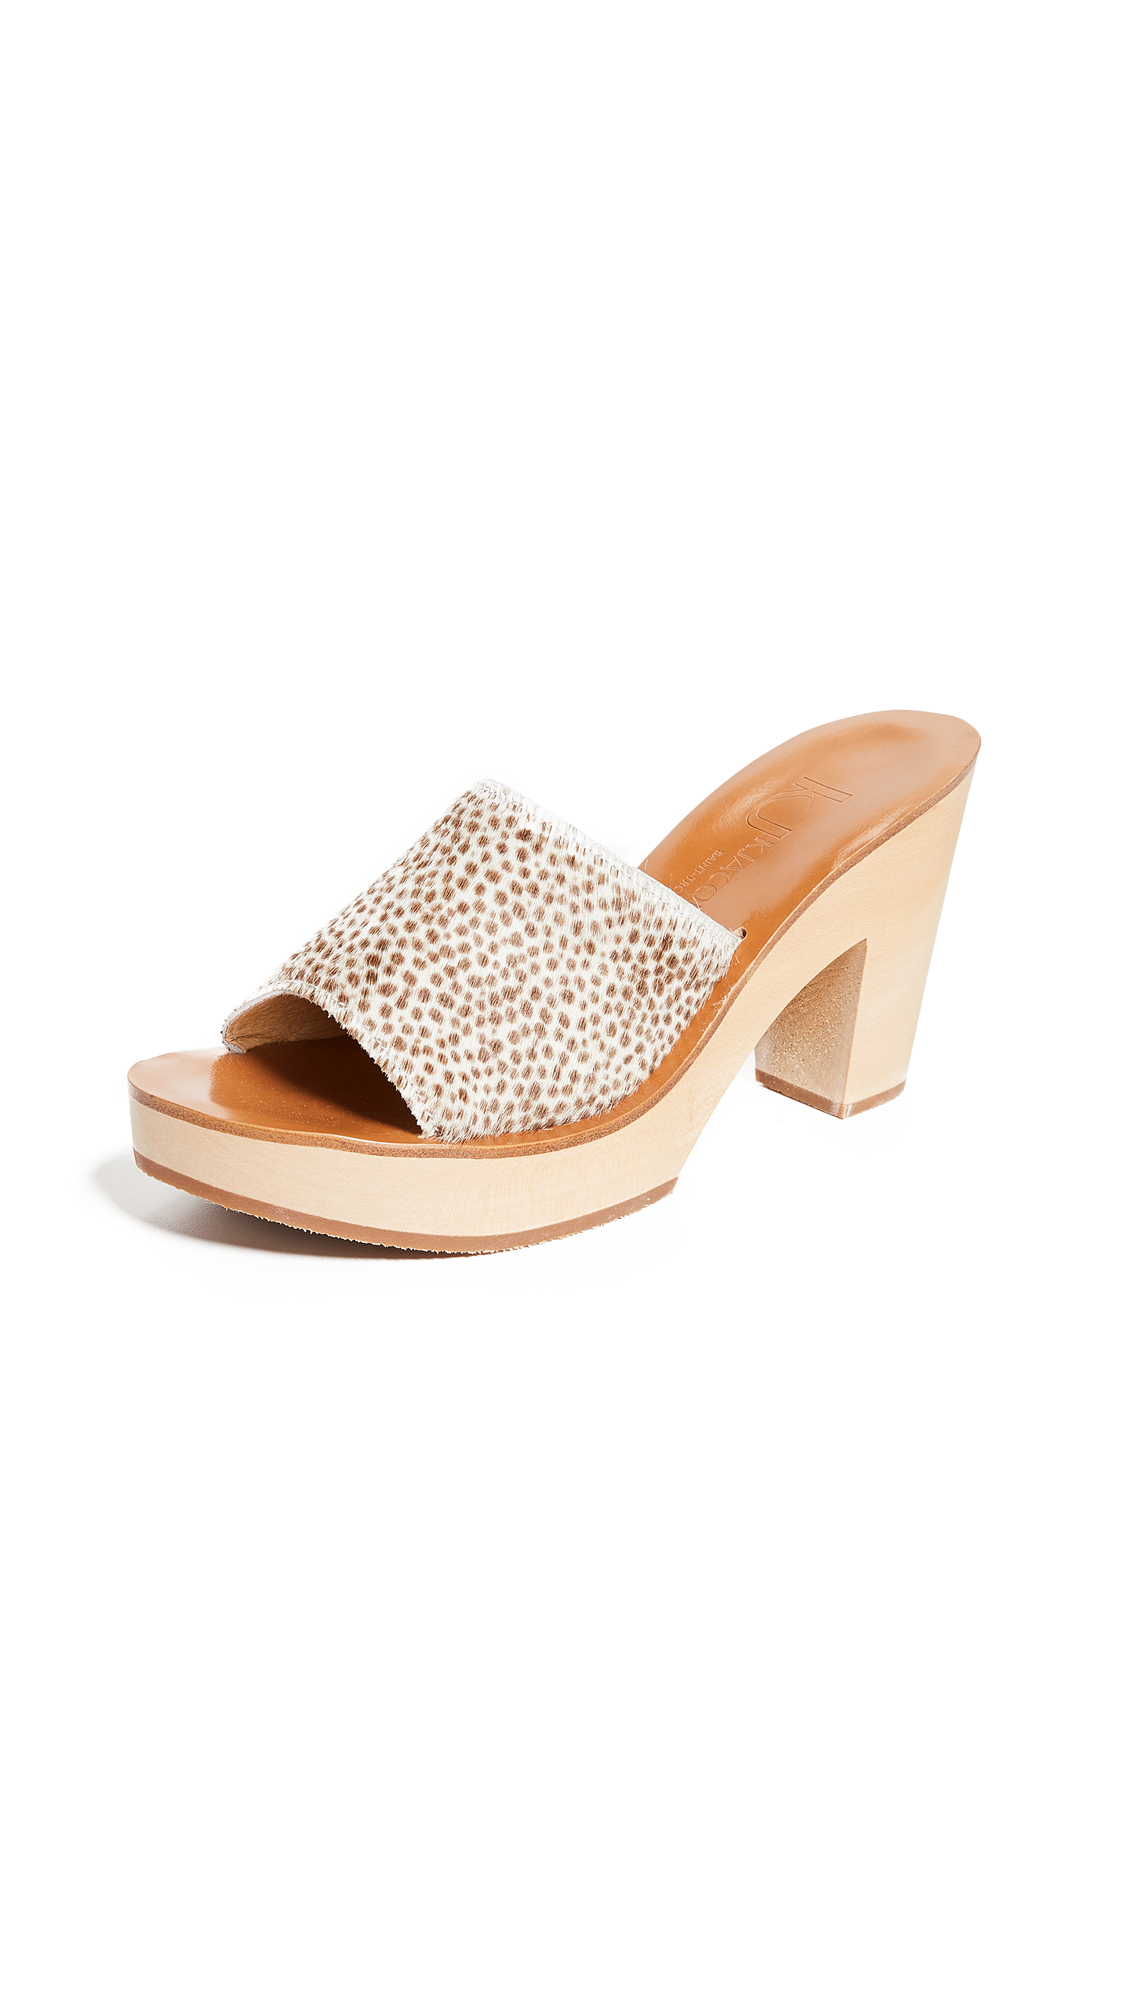 FISCUS HEELED MULES